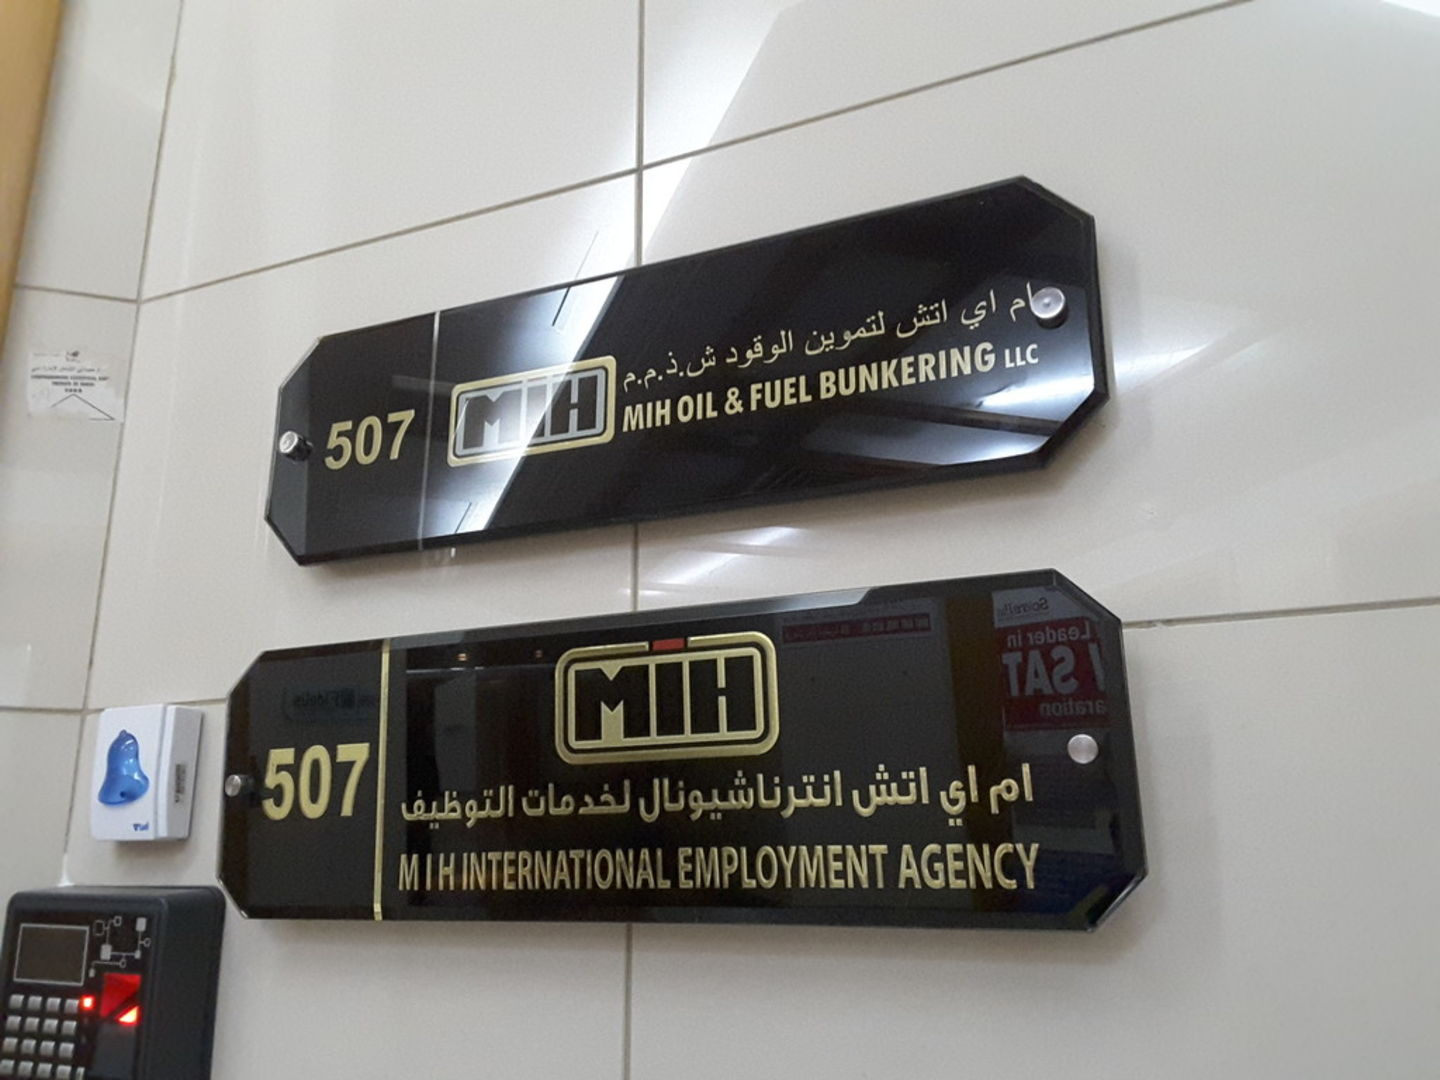 HiDubai-business-mih-employment-agency-b2b-services-business-process-outsourcing-services-oud-metha-dubai-2